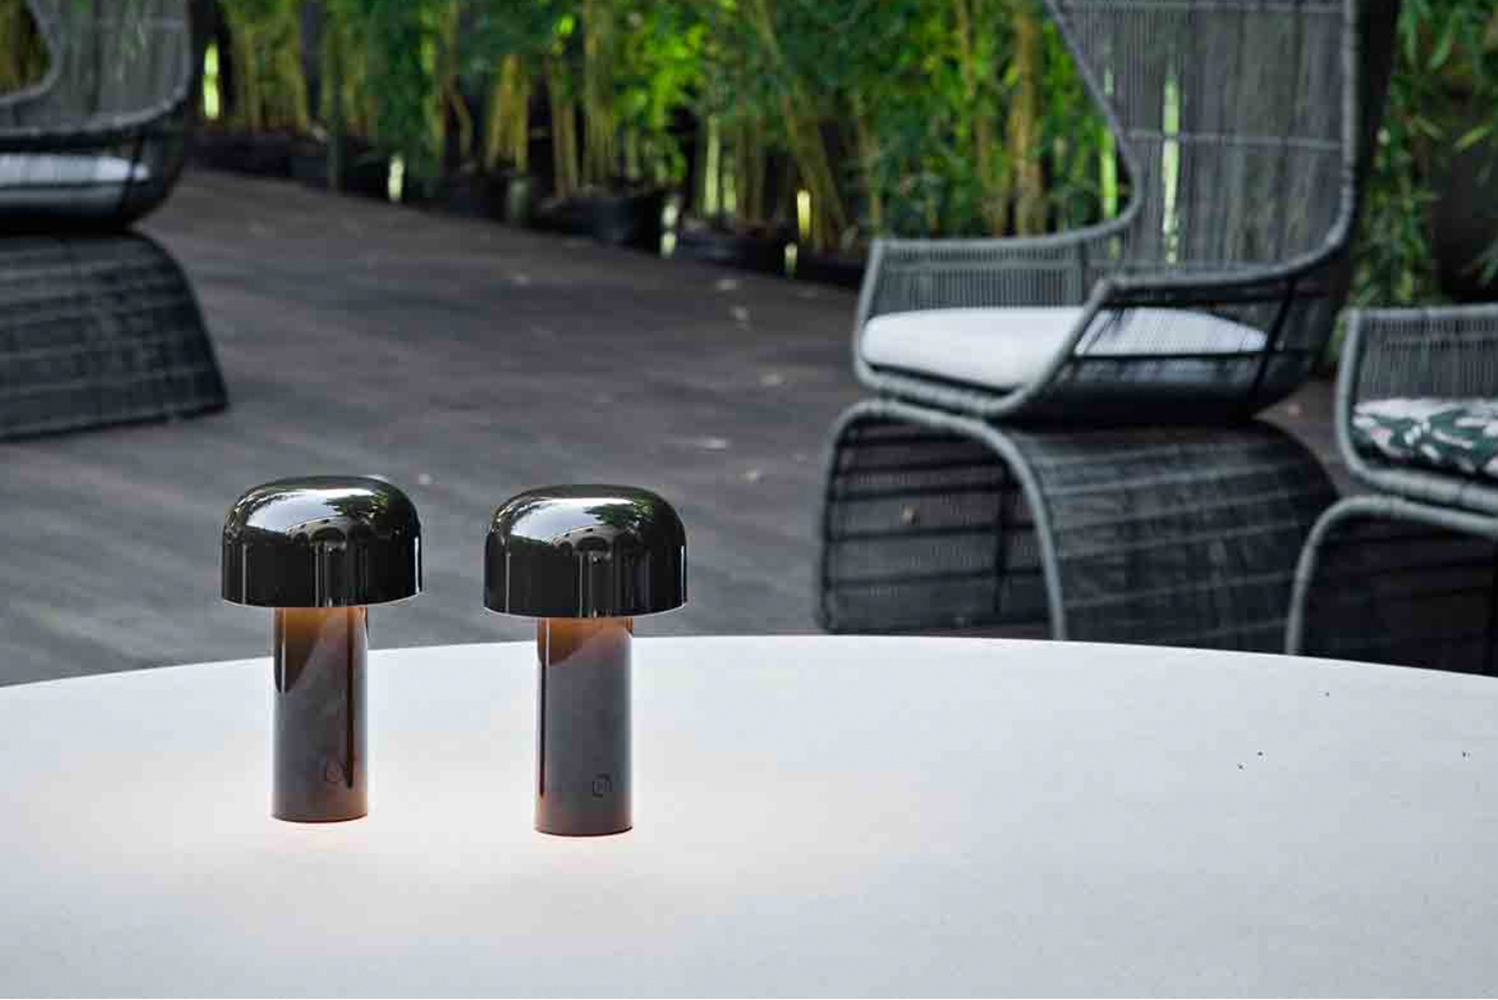 Introducing Bellhop, a battery-powered piece designed for Flos by Edward Barber & Jay Osgerby.